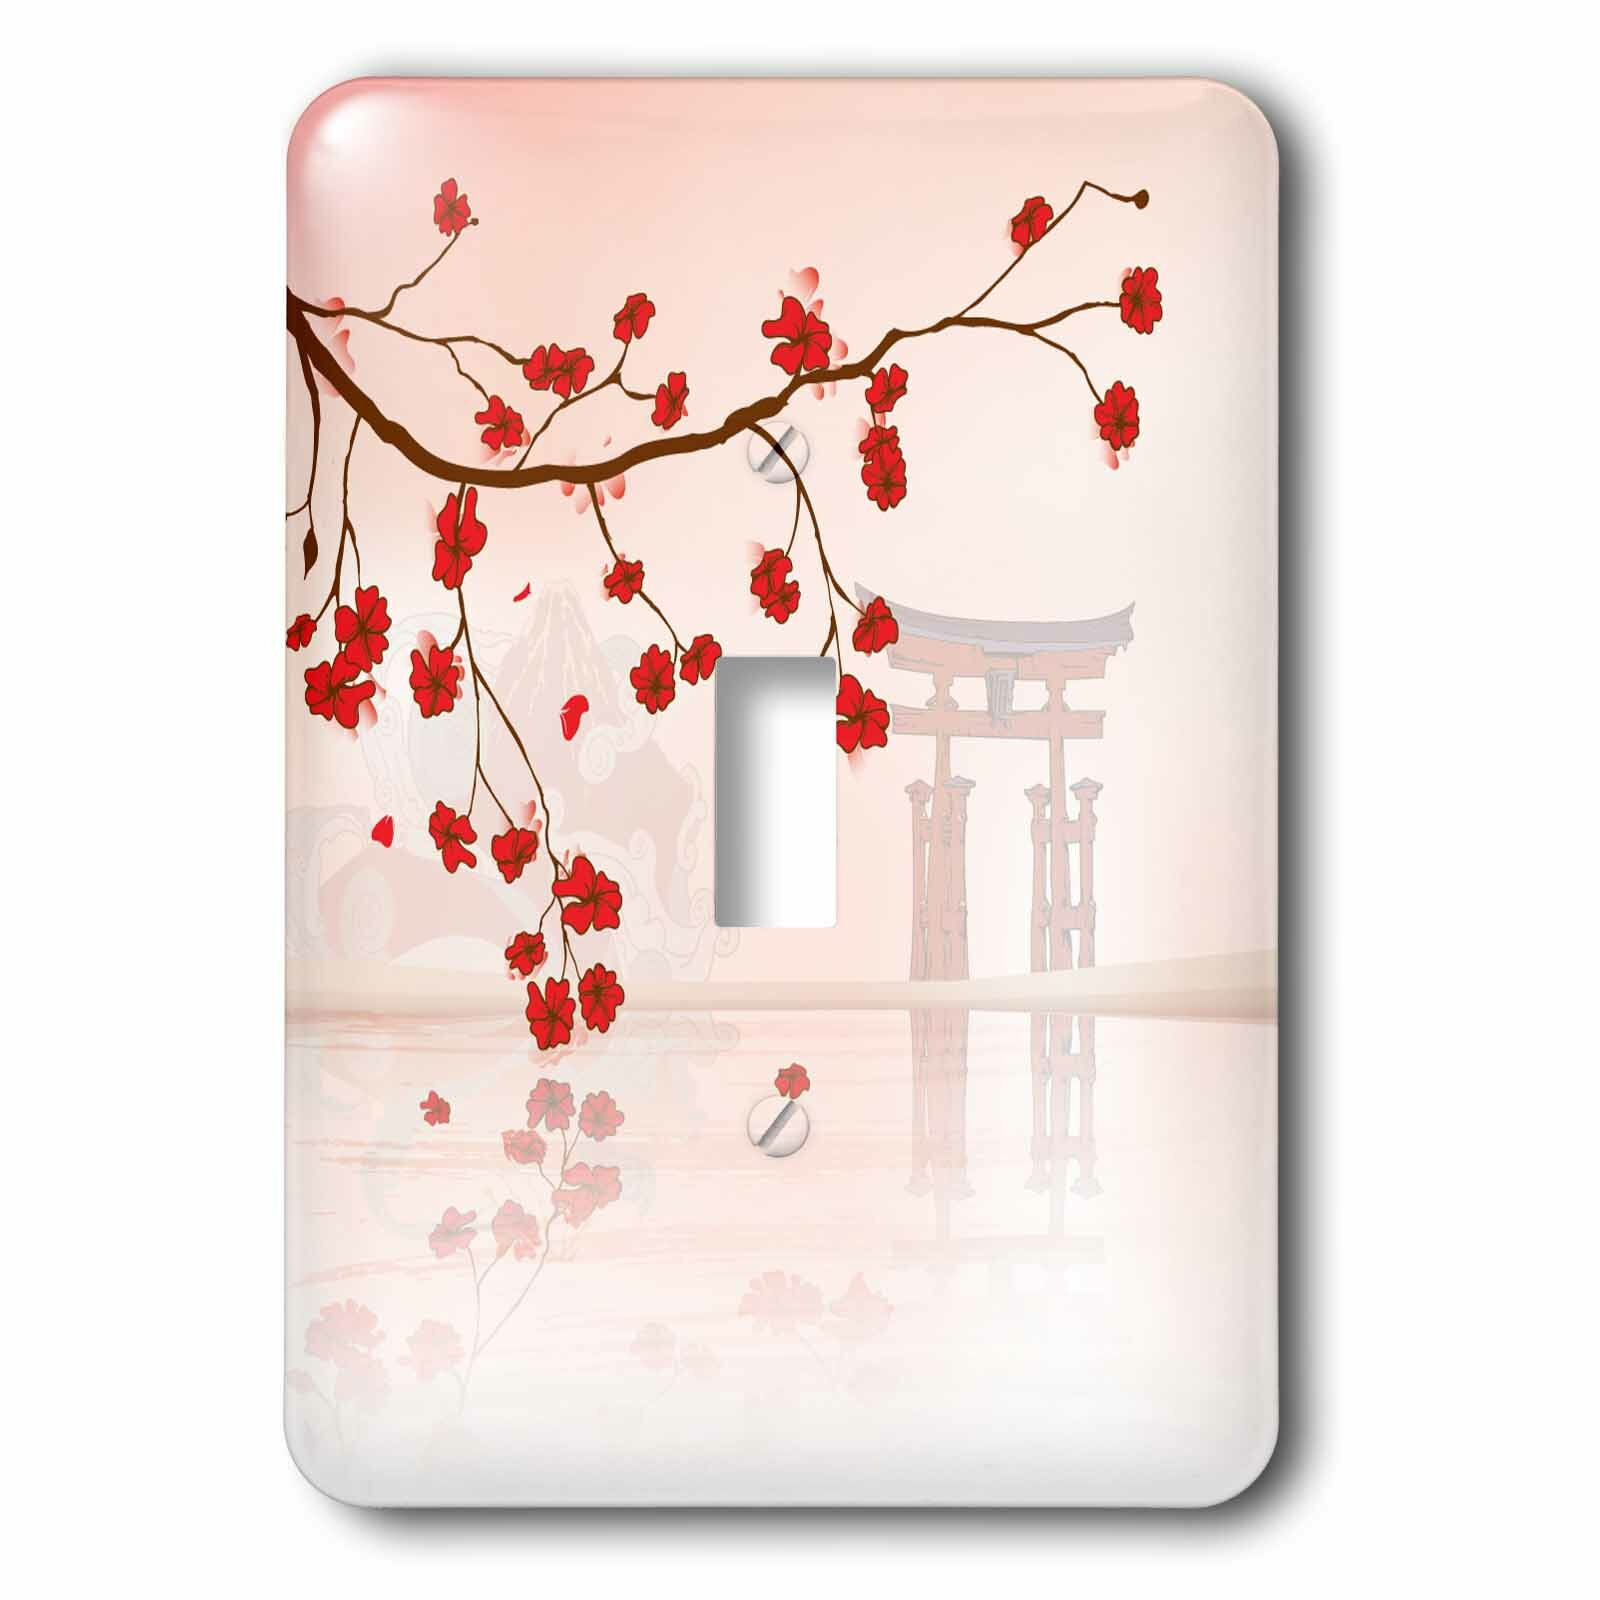 3drose Sakura Cherry Blossoms 1 Gang Toggle Light Switch Wall Plate Wayfair